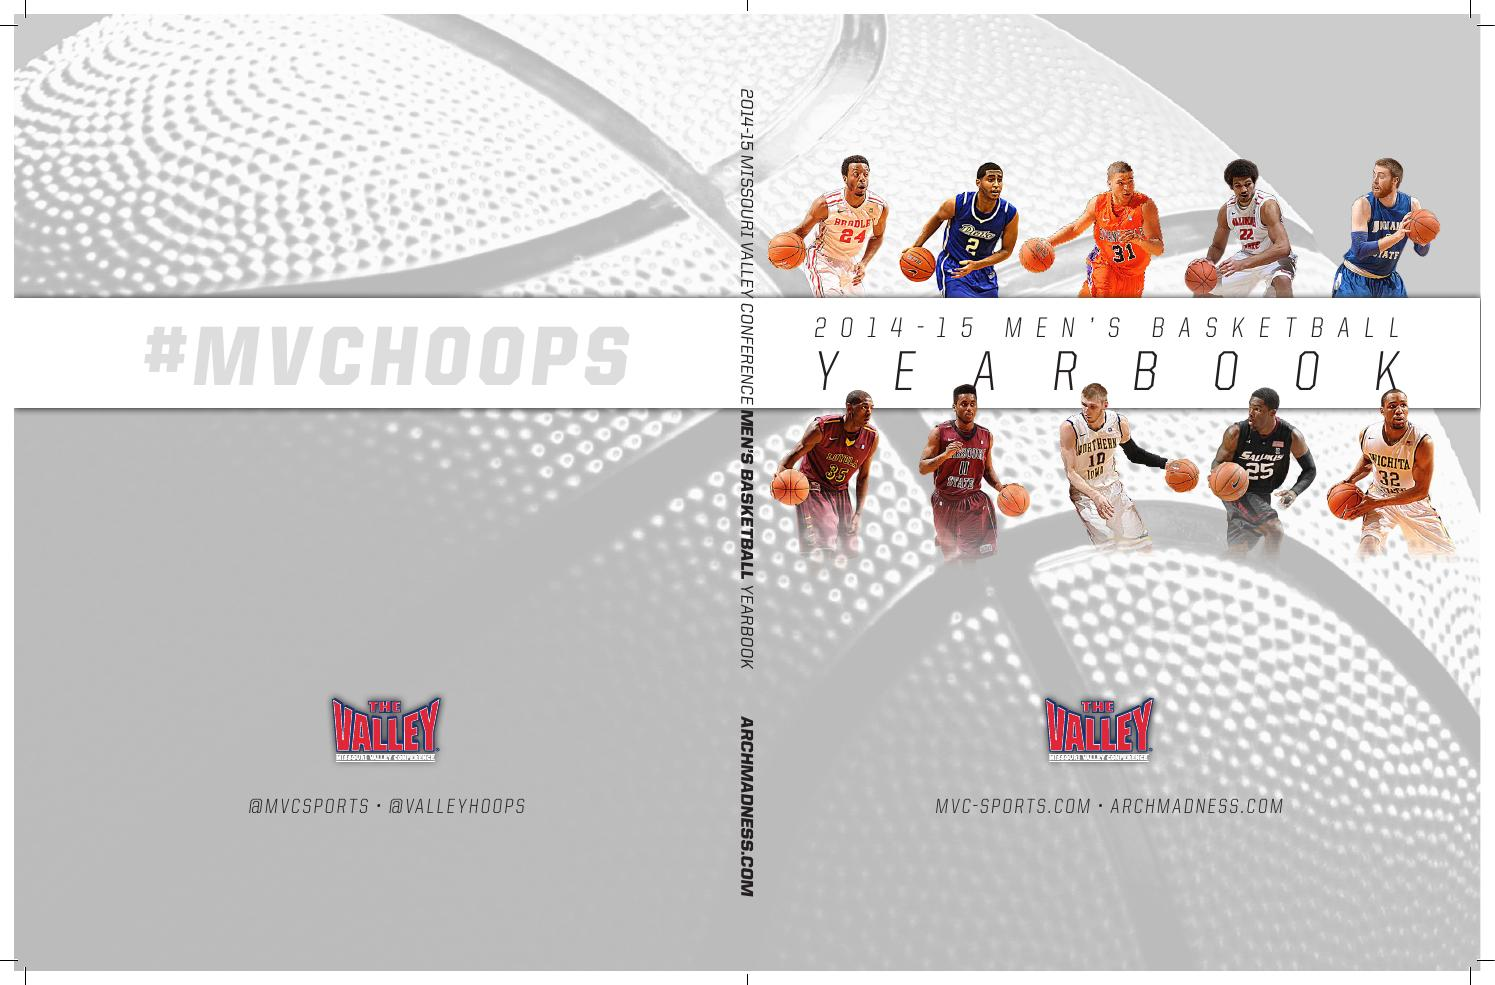 2014-15 MVC Men s Basketball Media Guide by Missouri Valley Conference -  issuu 8d83509b3bba0